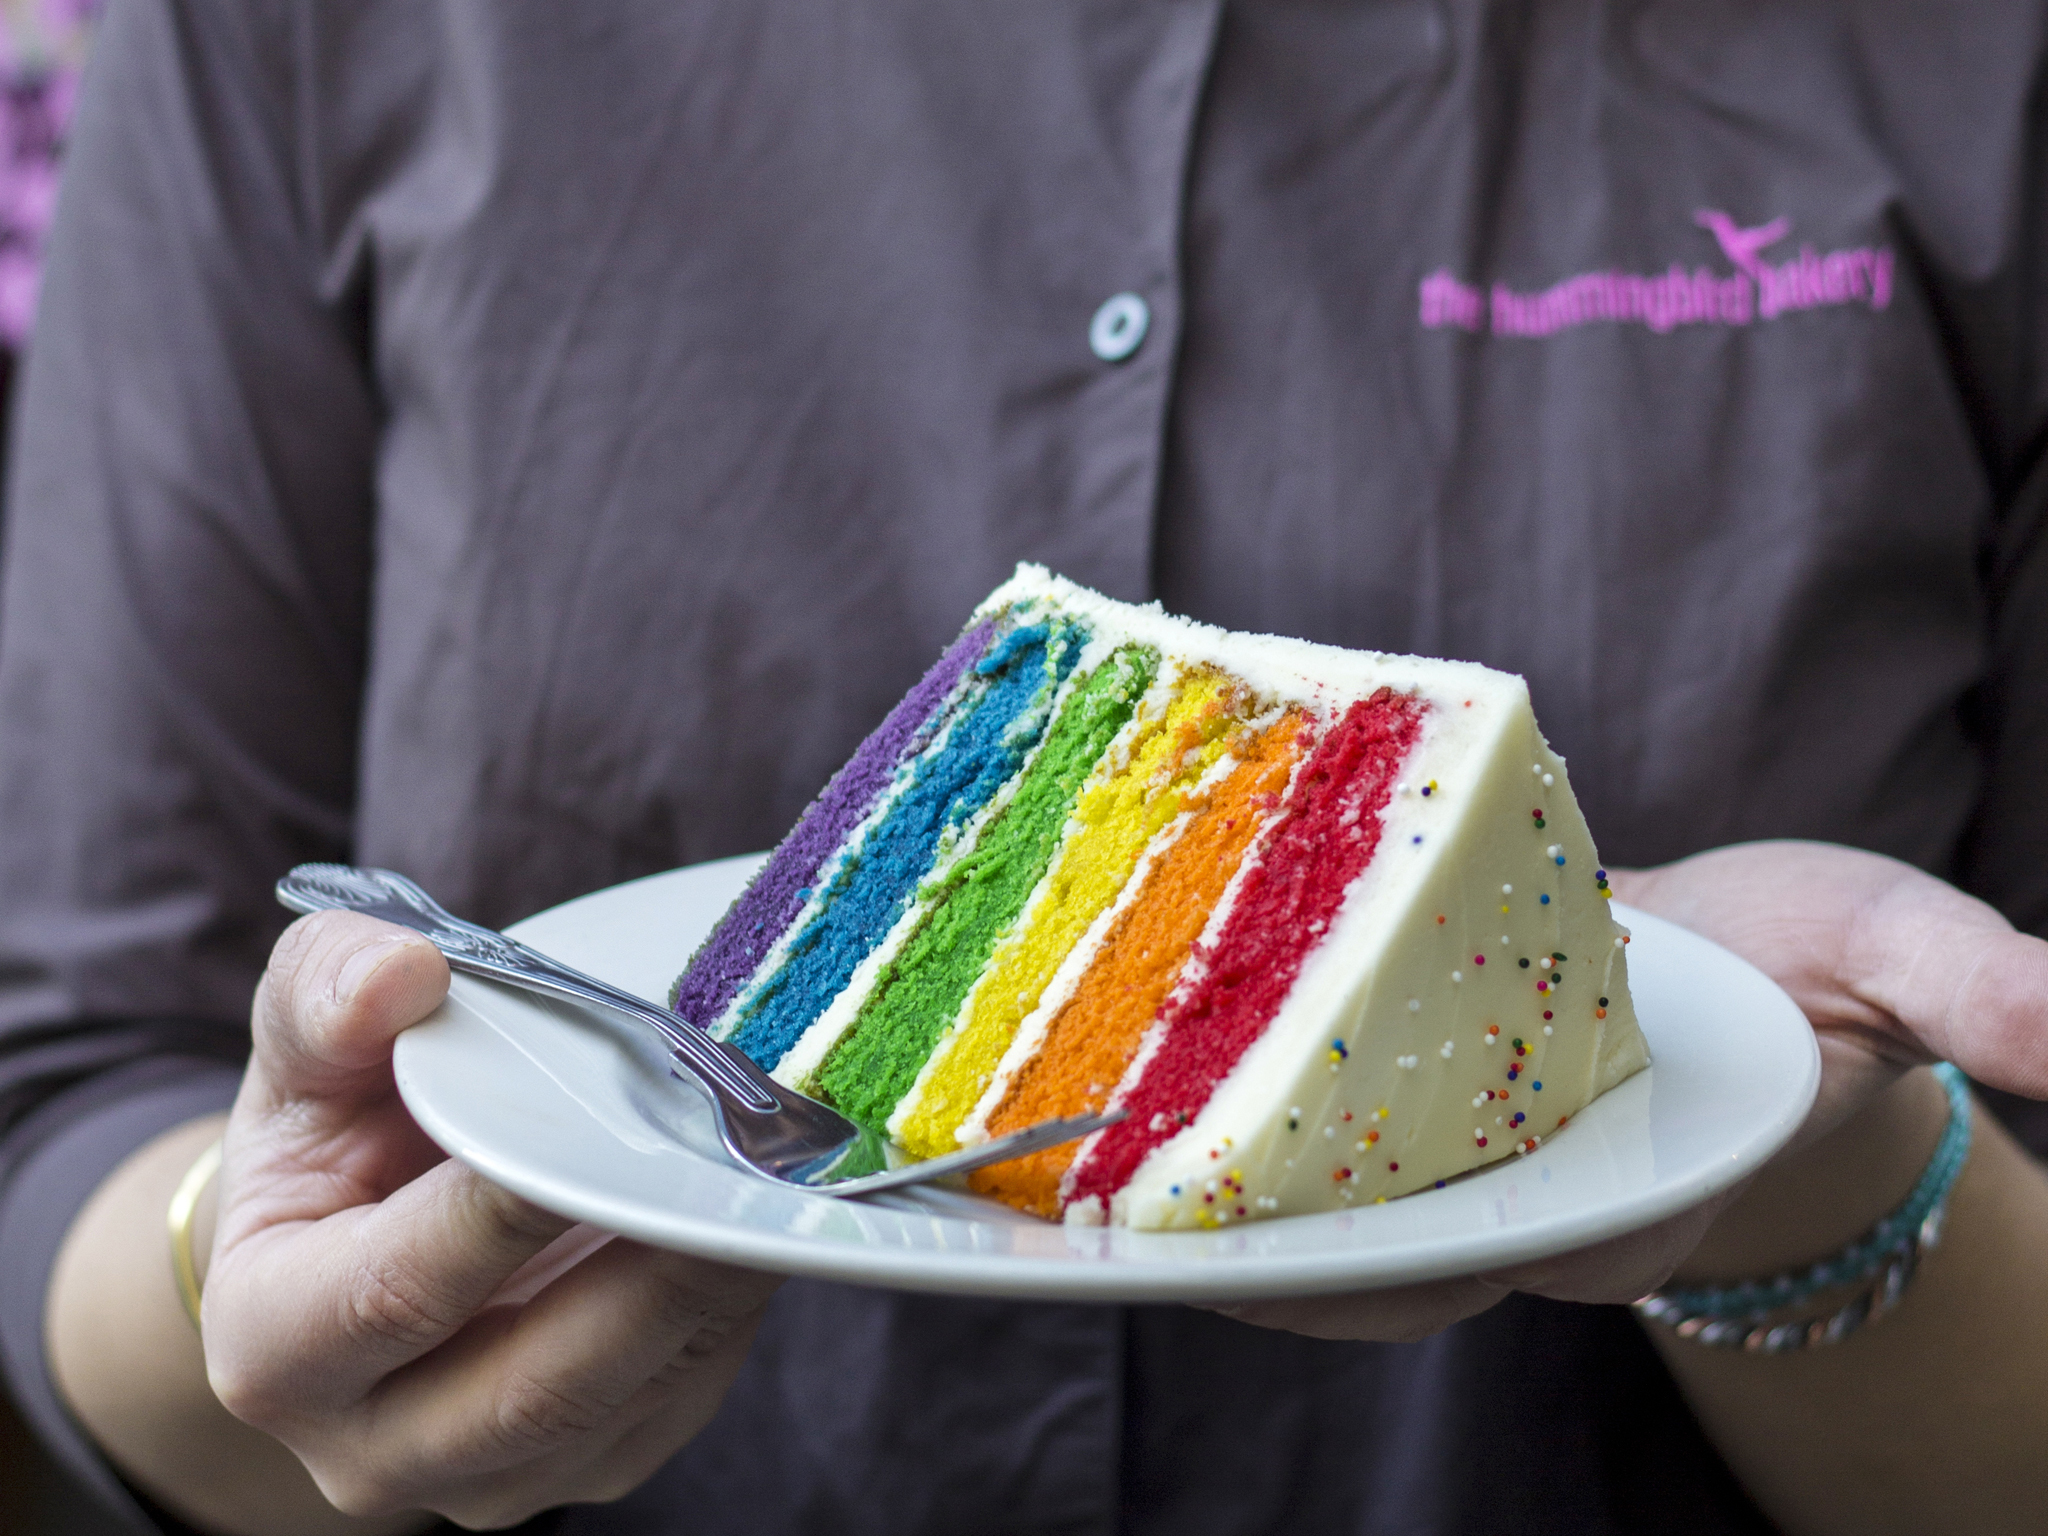 London S Best Cakes Restaurants And Cafes Time Out London